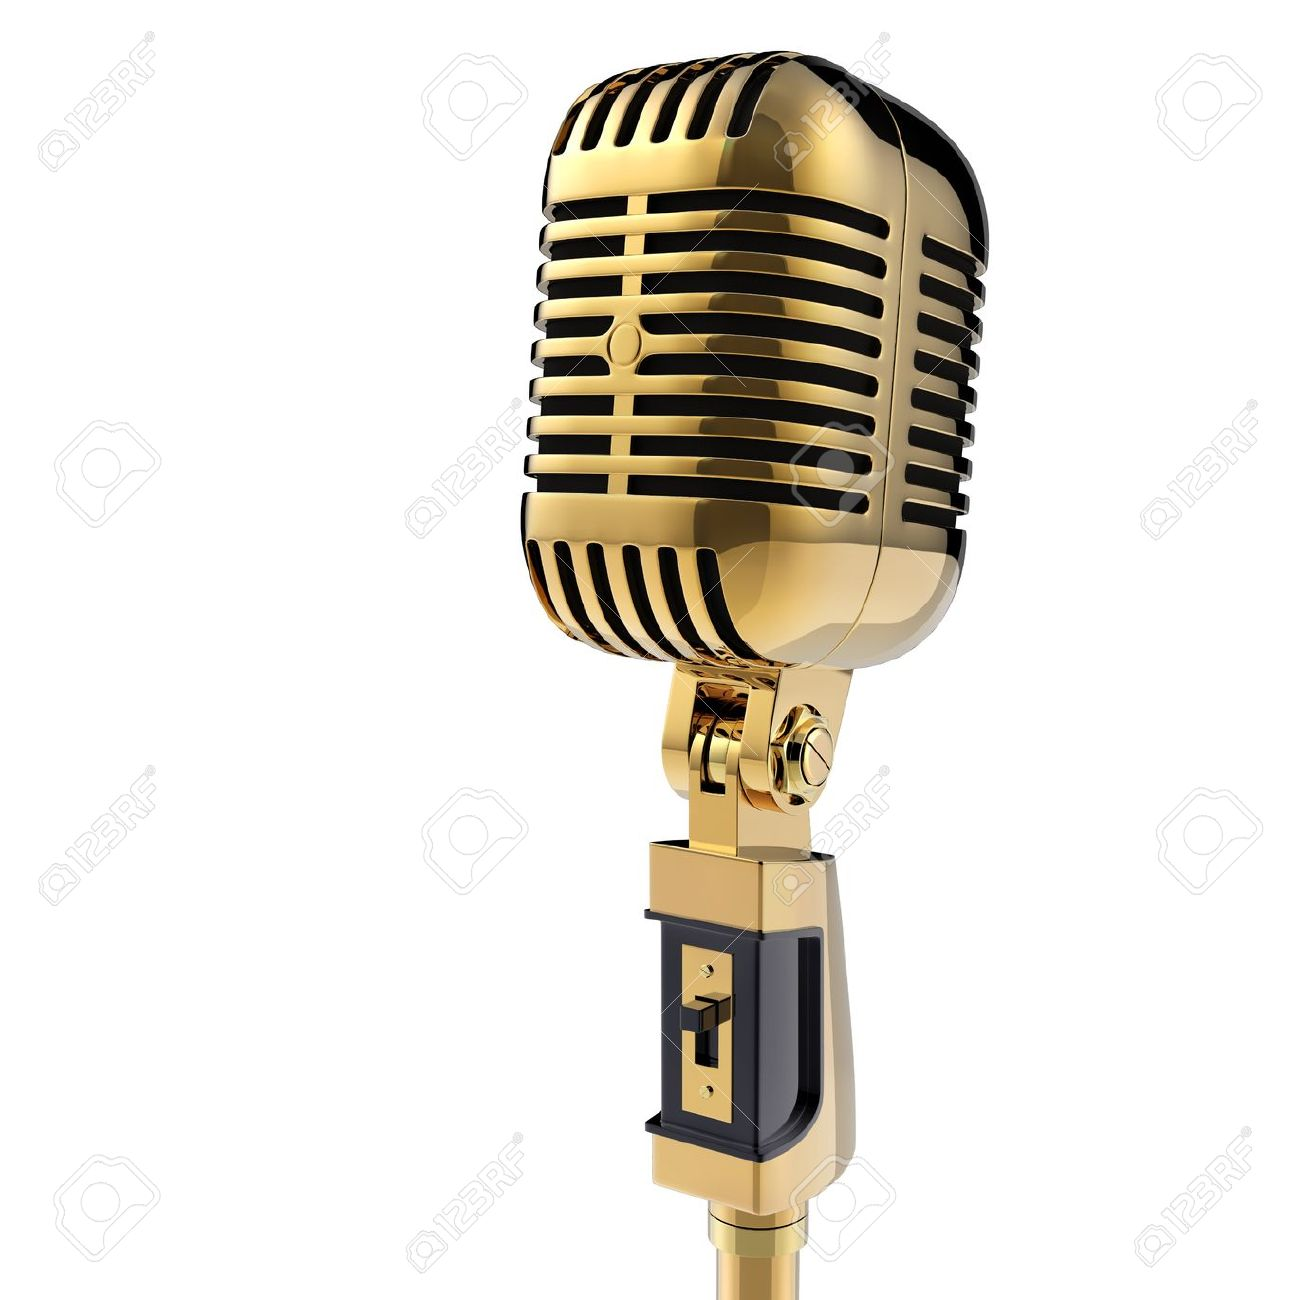 3d Retro microphone isolated on white Stock Photo - 14730787 - PNG Vintage Microphone